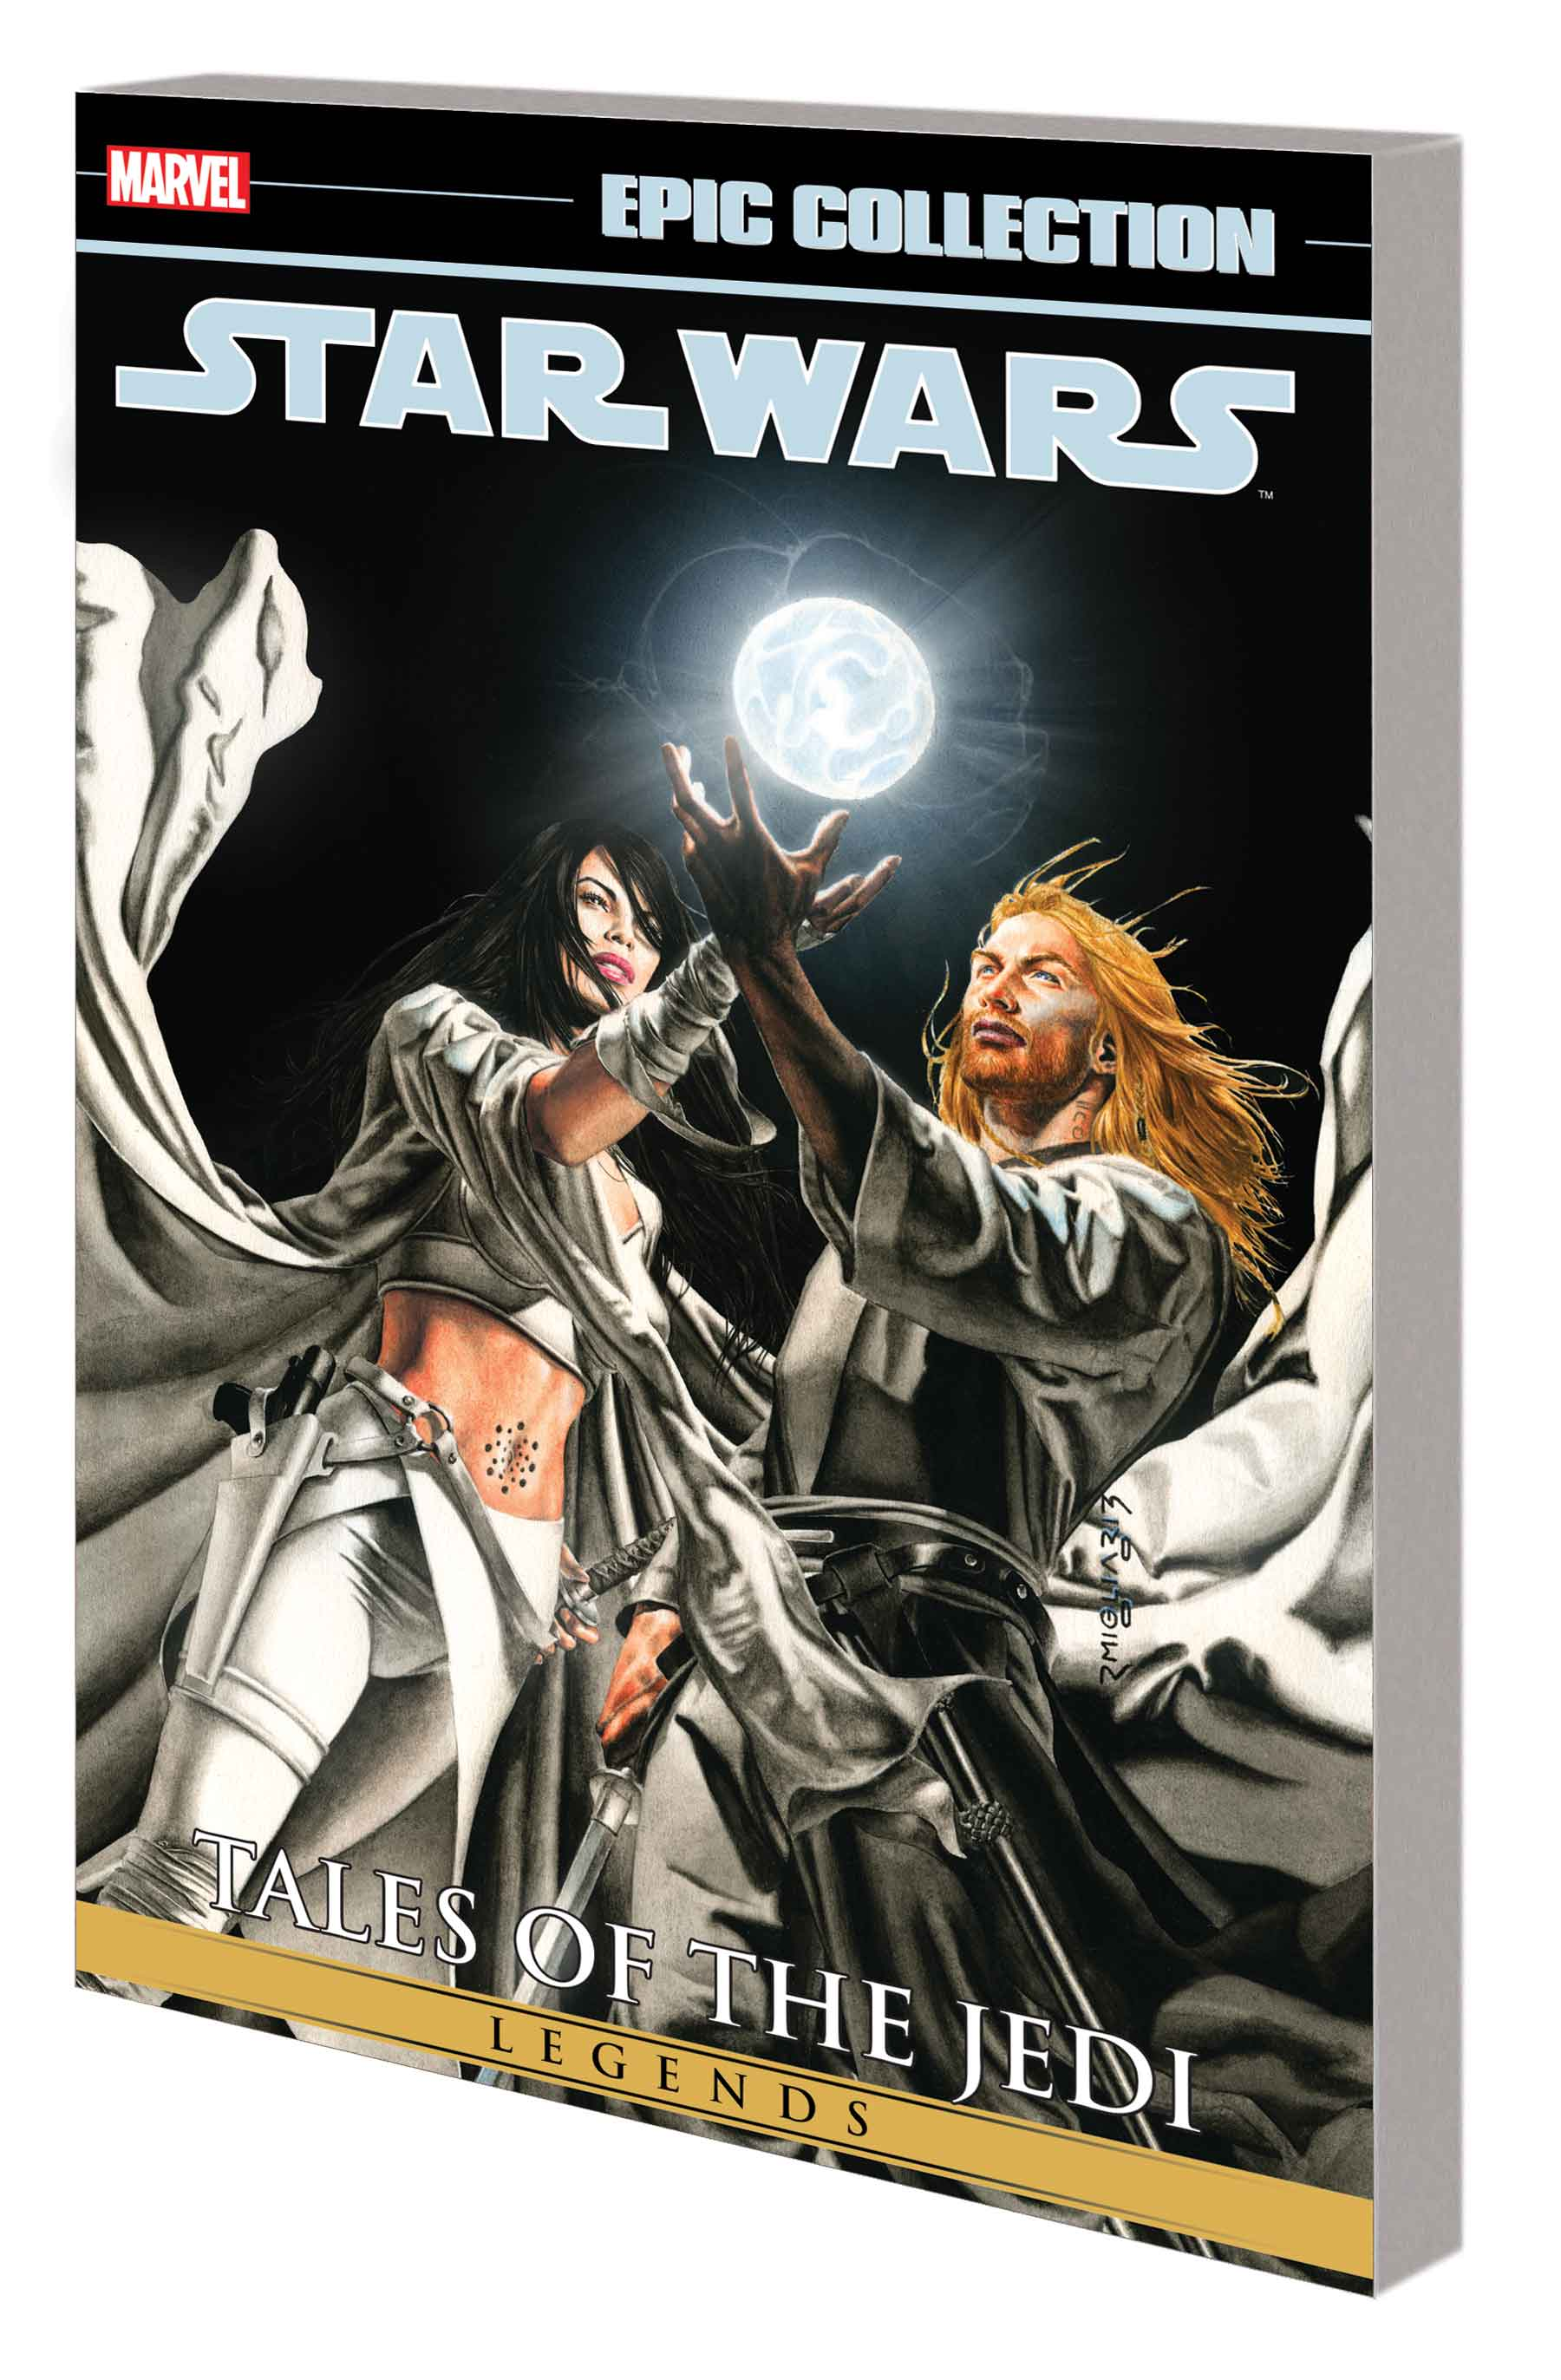 STAR WARS LEGENDS EPIC COLLECTION: TALES OF THE JEDI VOL. 1 TPB (Trade Paperback)